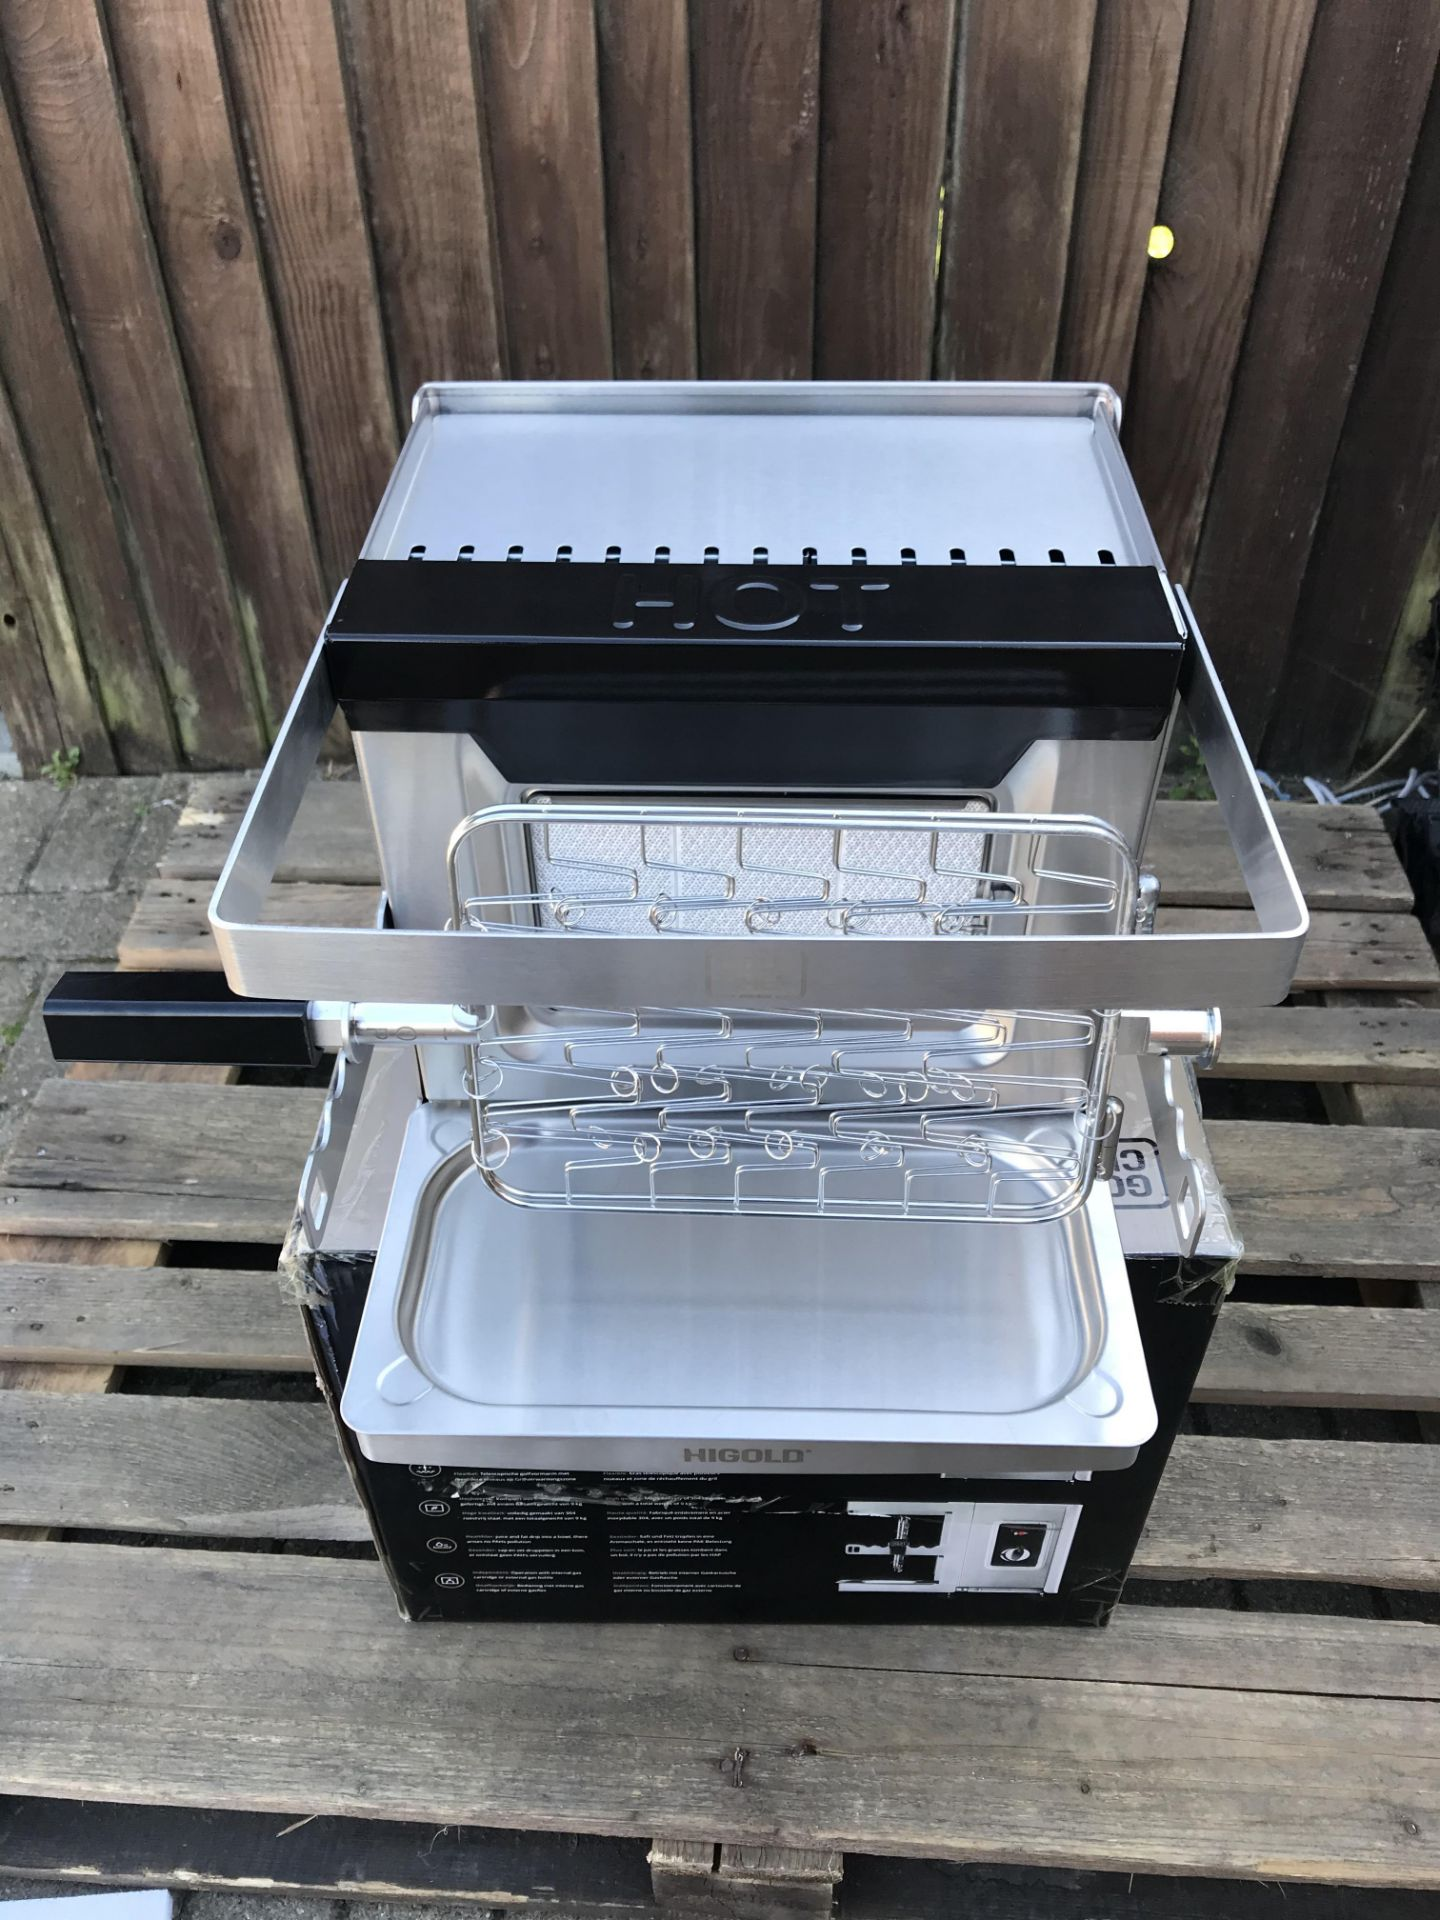 Lot 14 - GOLD CHEF TWO 800C ROTISSERIE GRILL